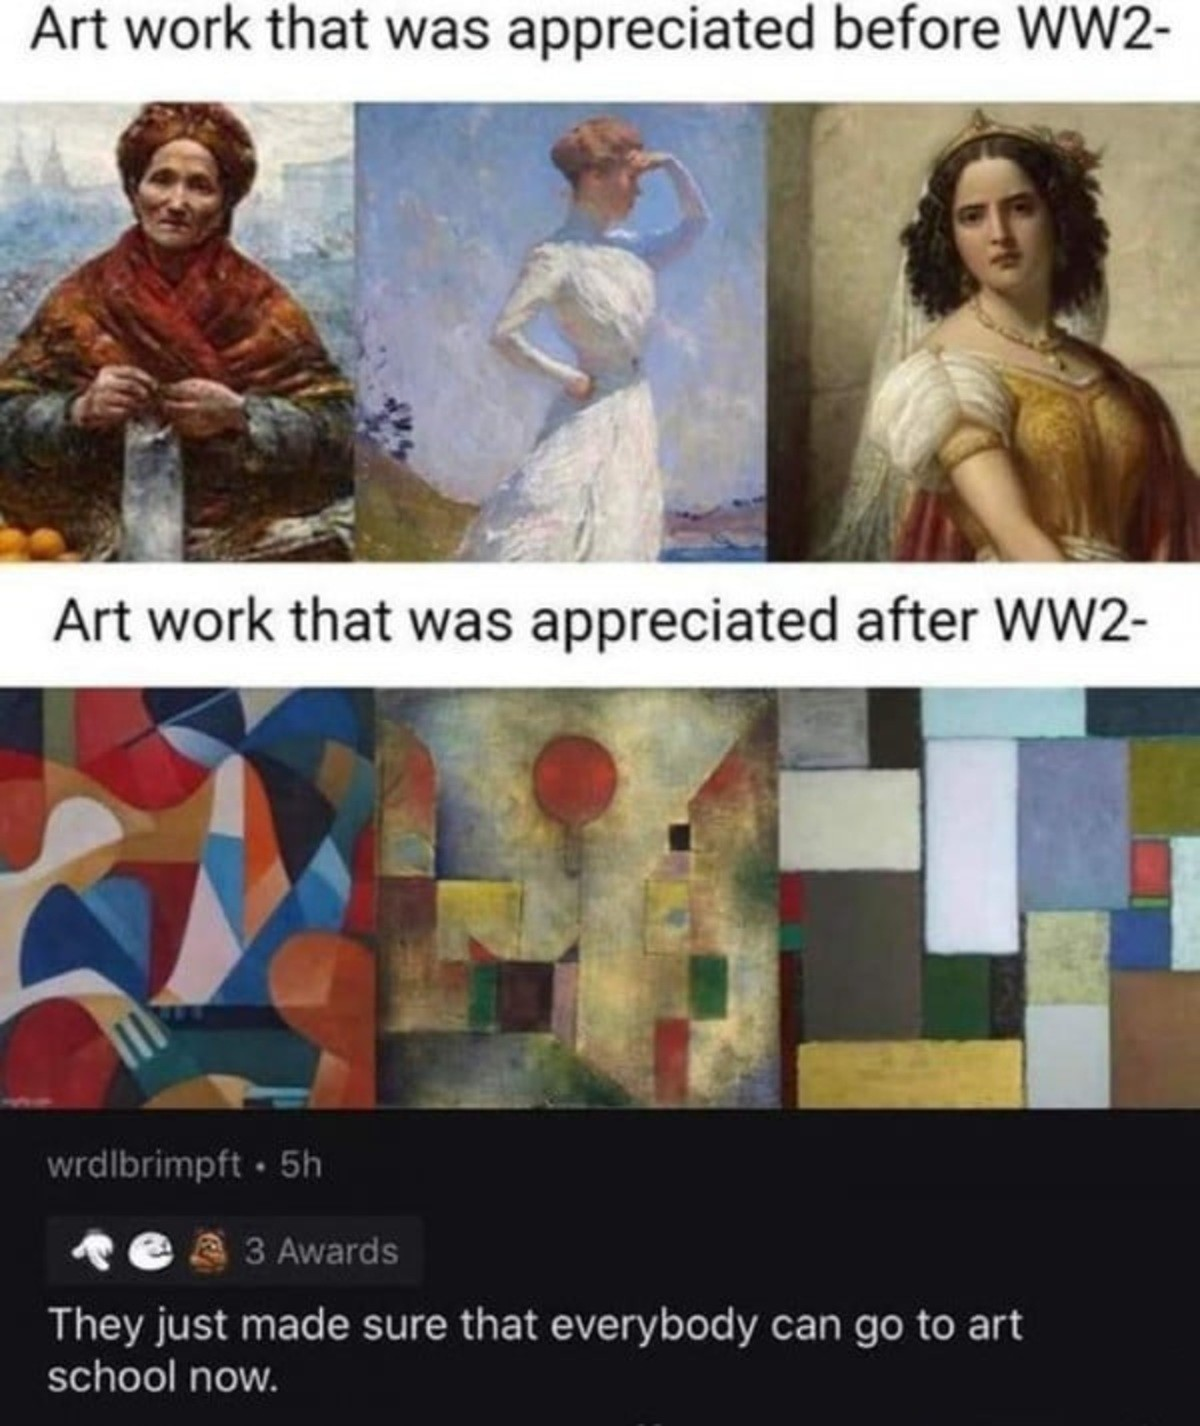 Art before and after WW2. .. No it actually happened directly before, and was an understated major cause to WW2. Picassos trend was a contributing factor to Hitler's rejection to art school